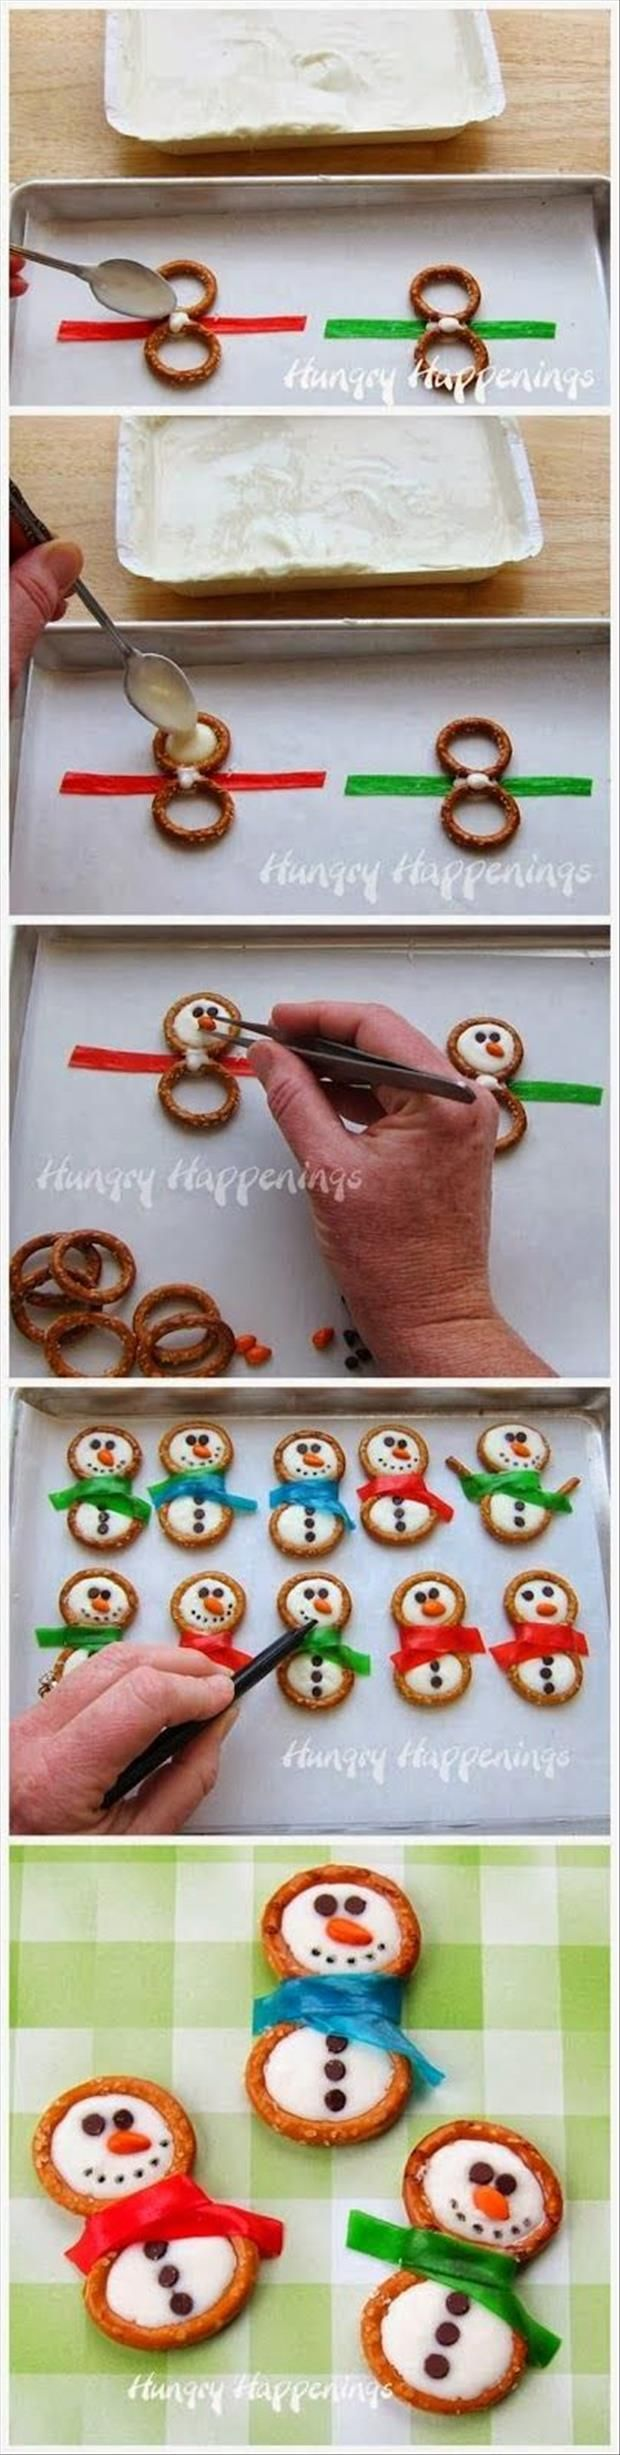 Fun Easy Christmas Craft - Pretzel snowmen